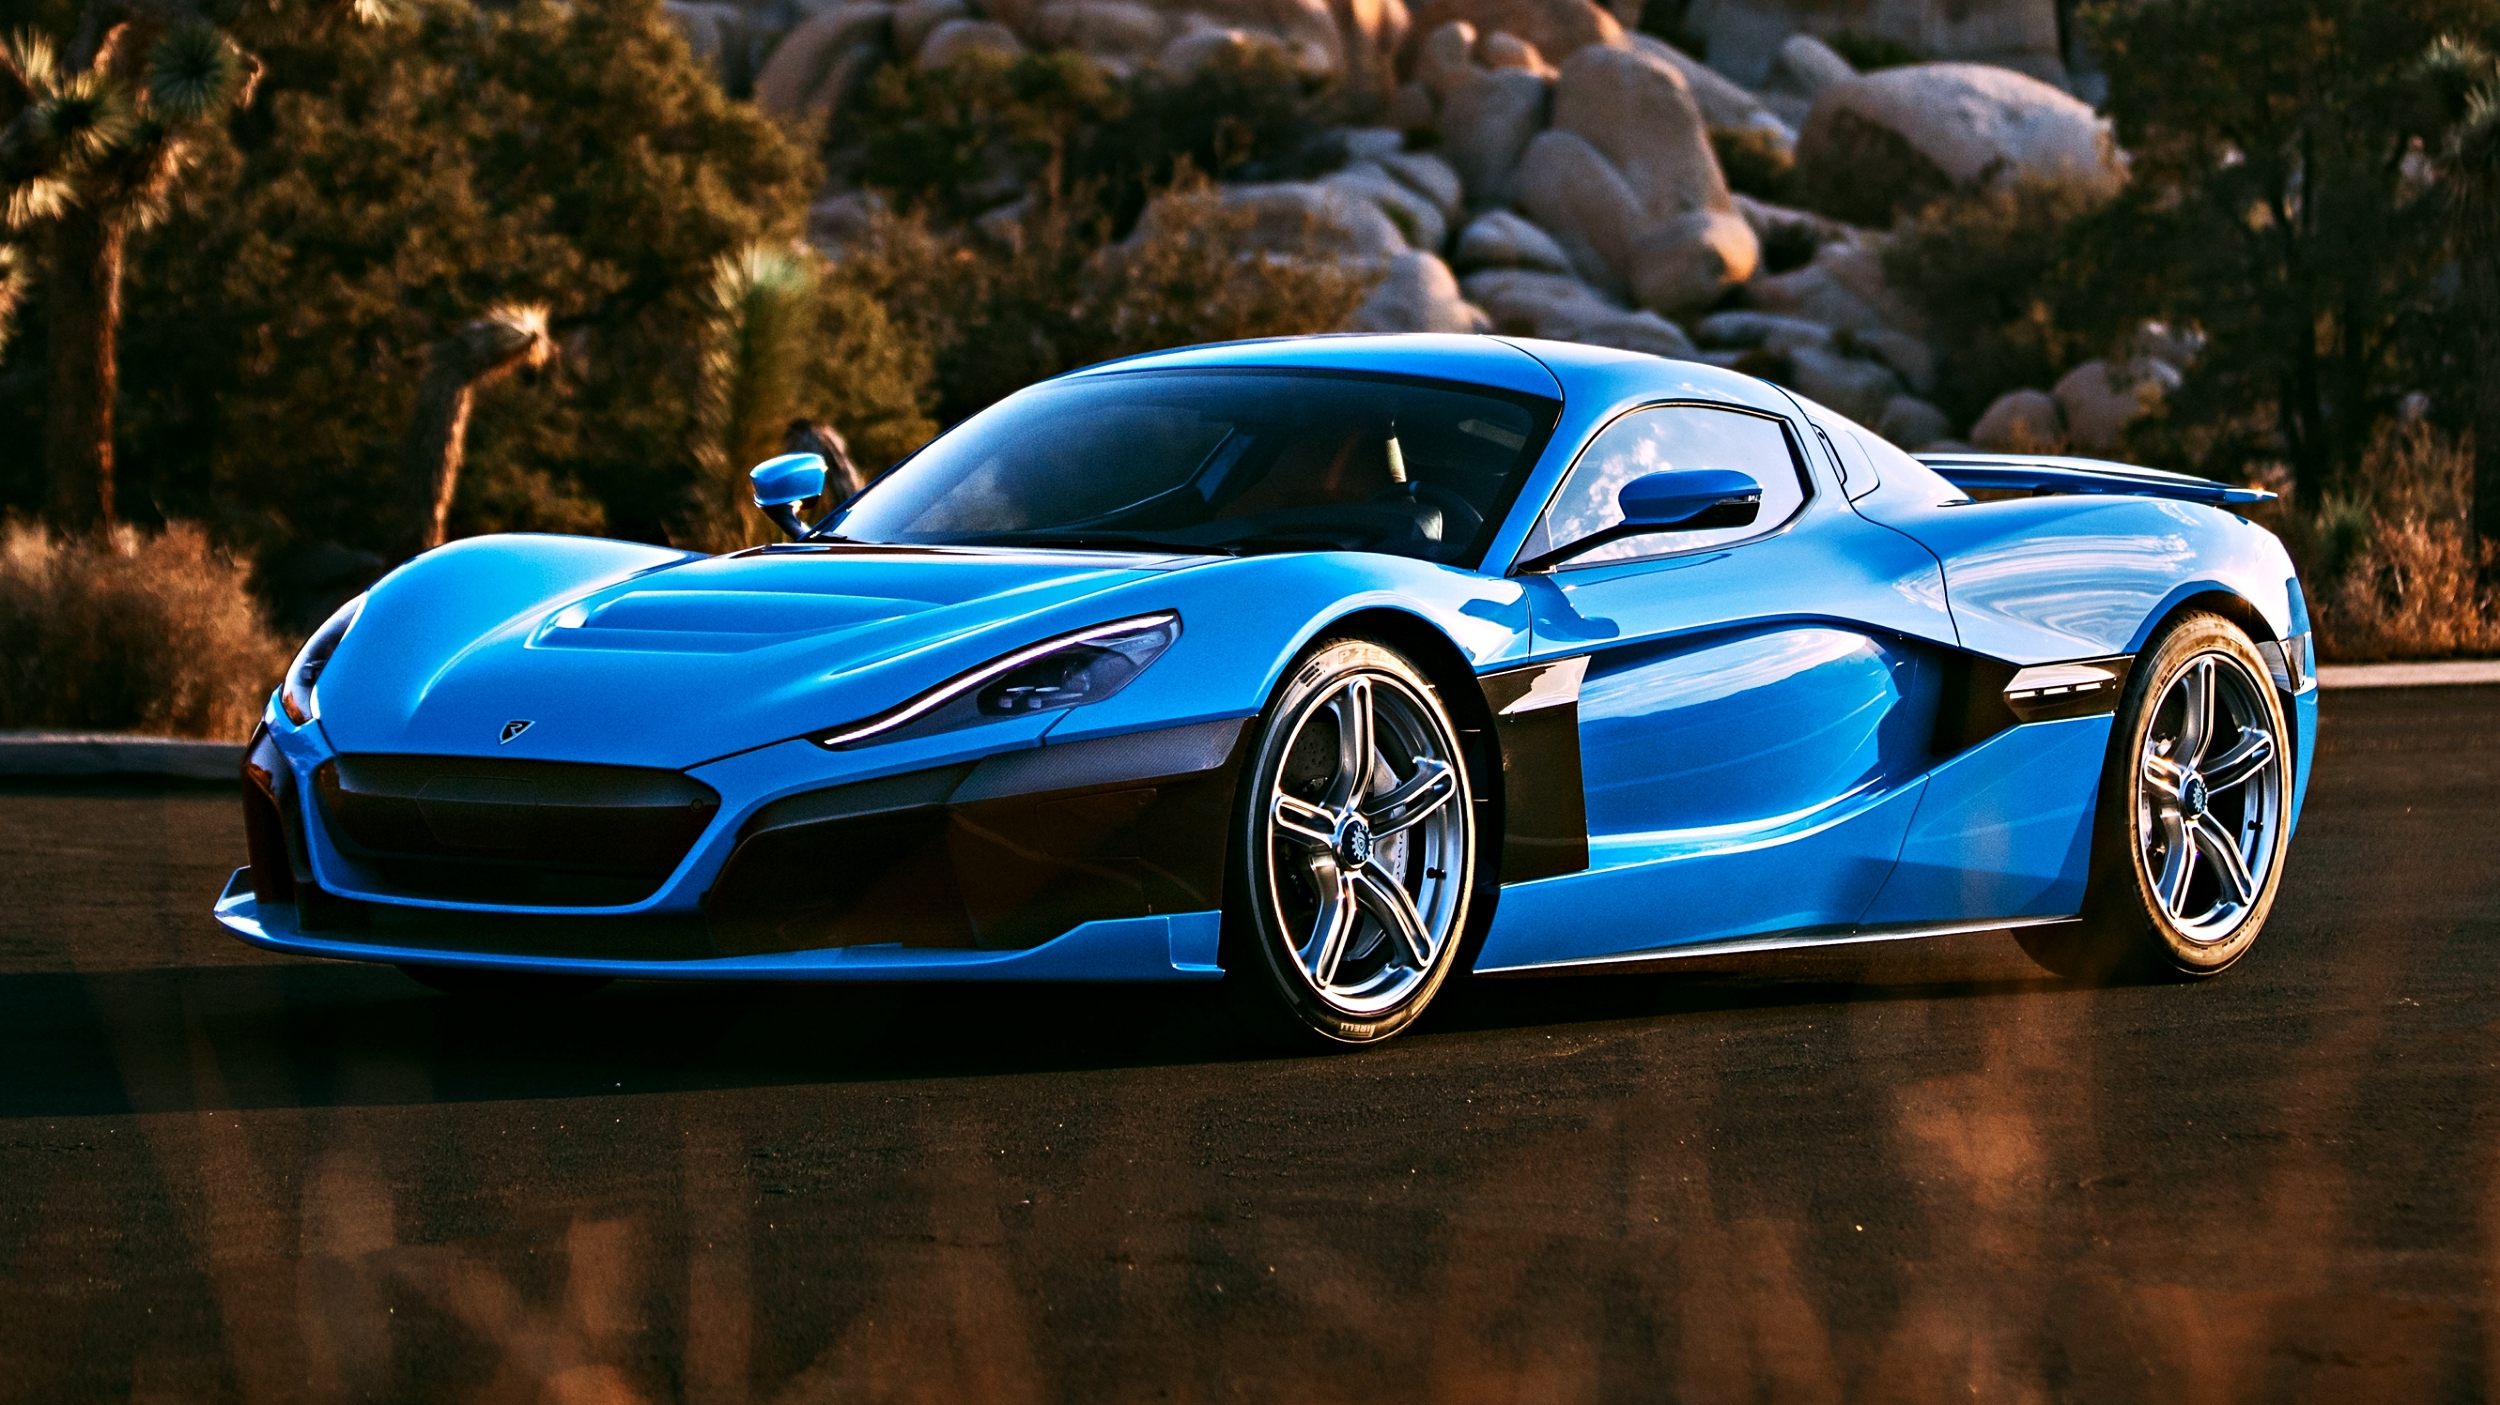 rimac concept california edition hypercar electric cars sports hyper nm 2300 week super ctwo gear picstatio